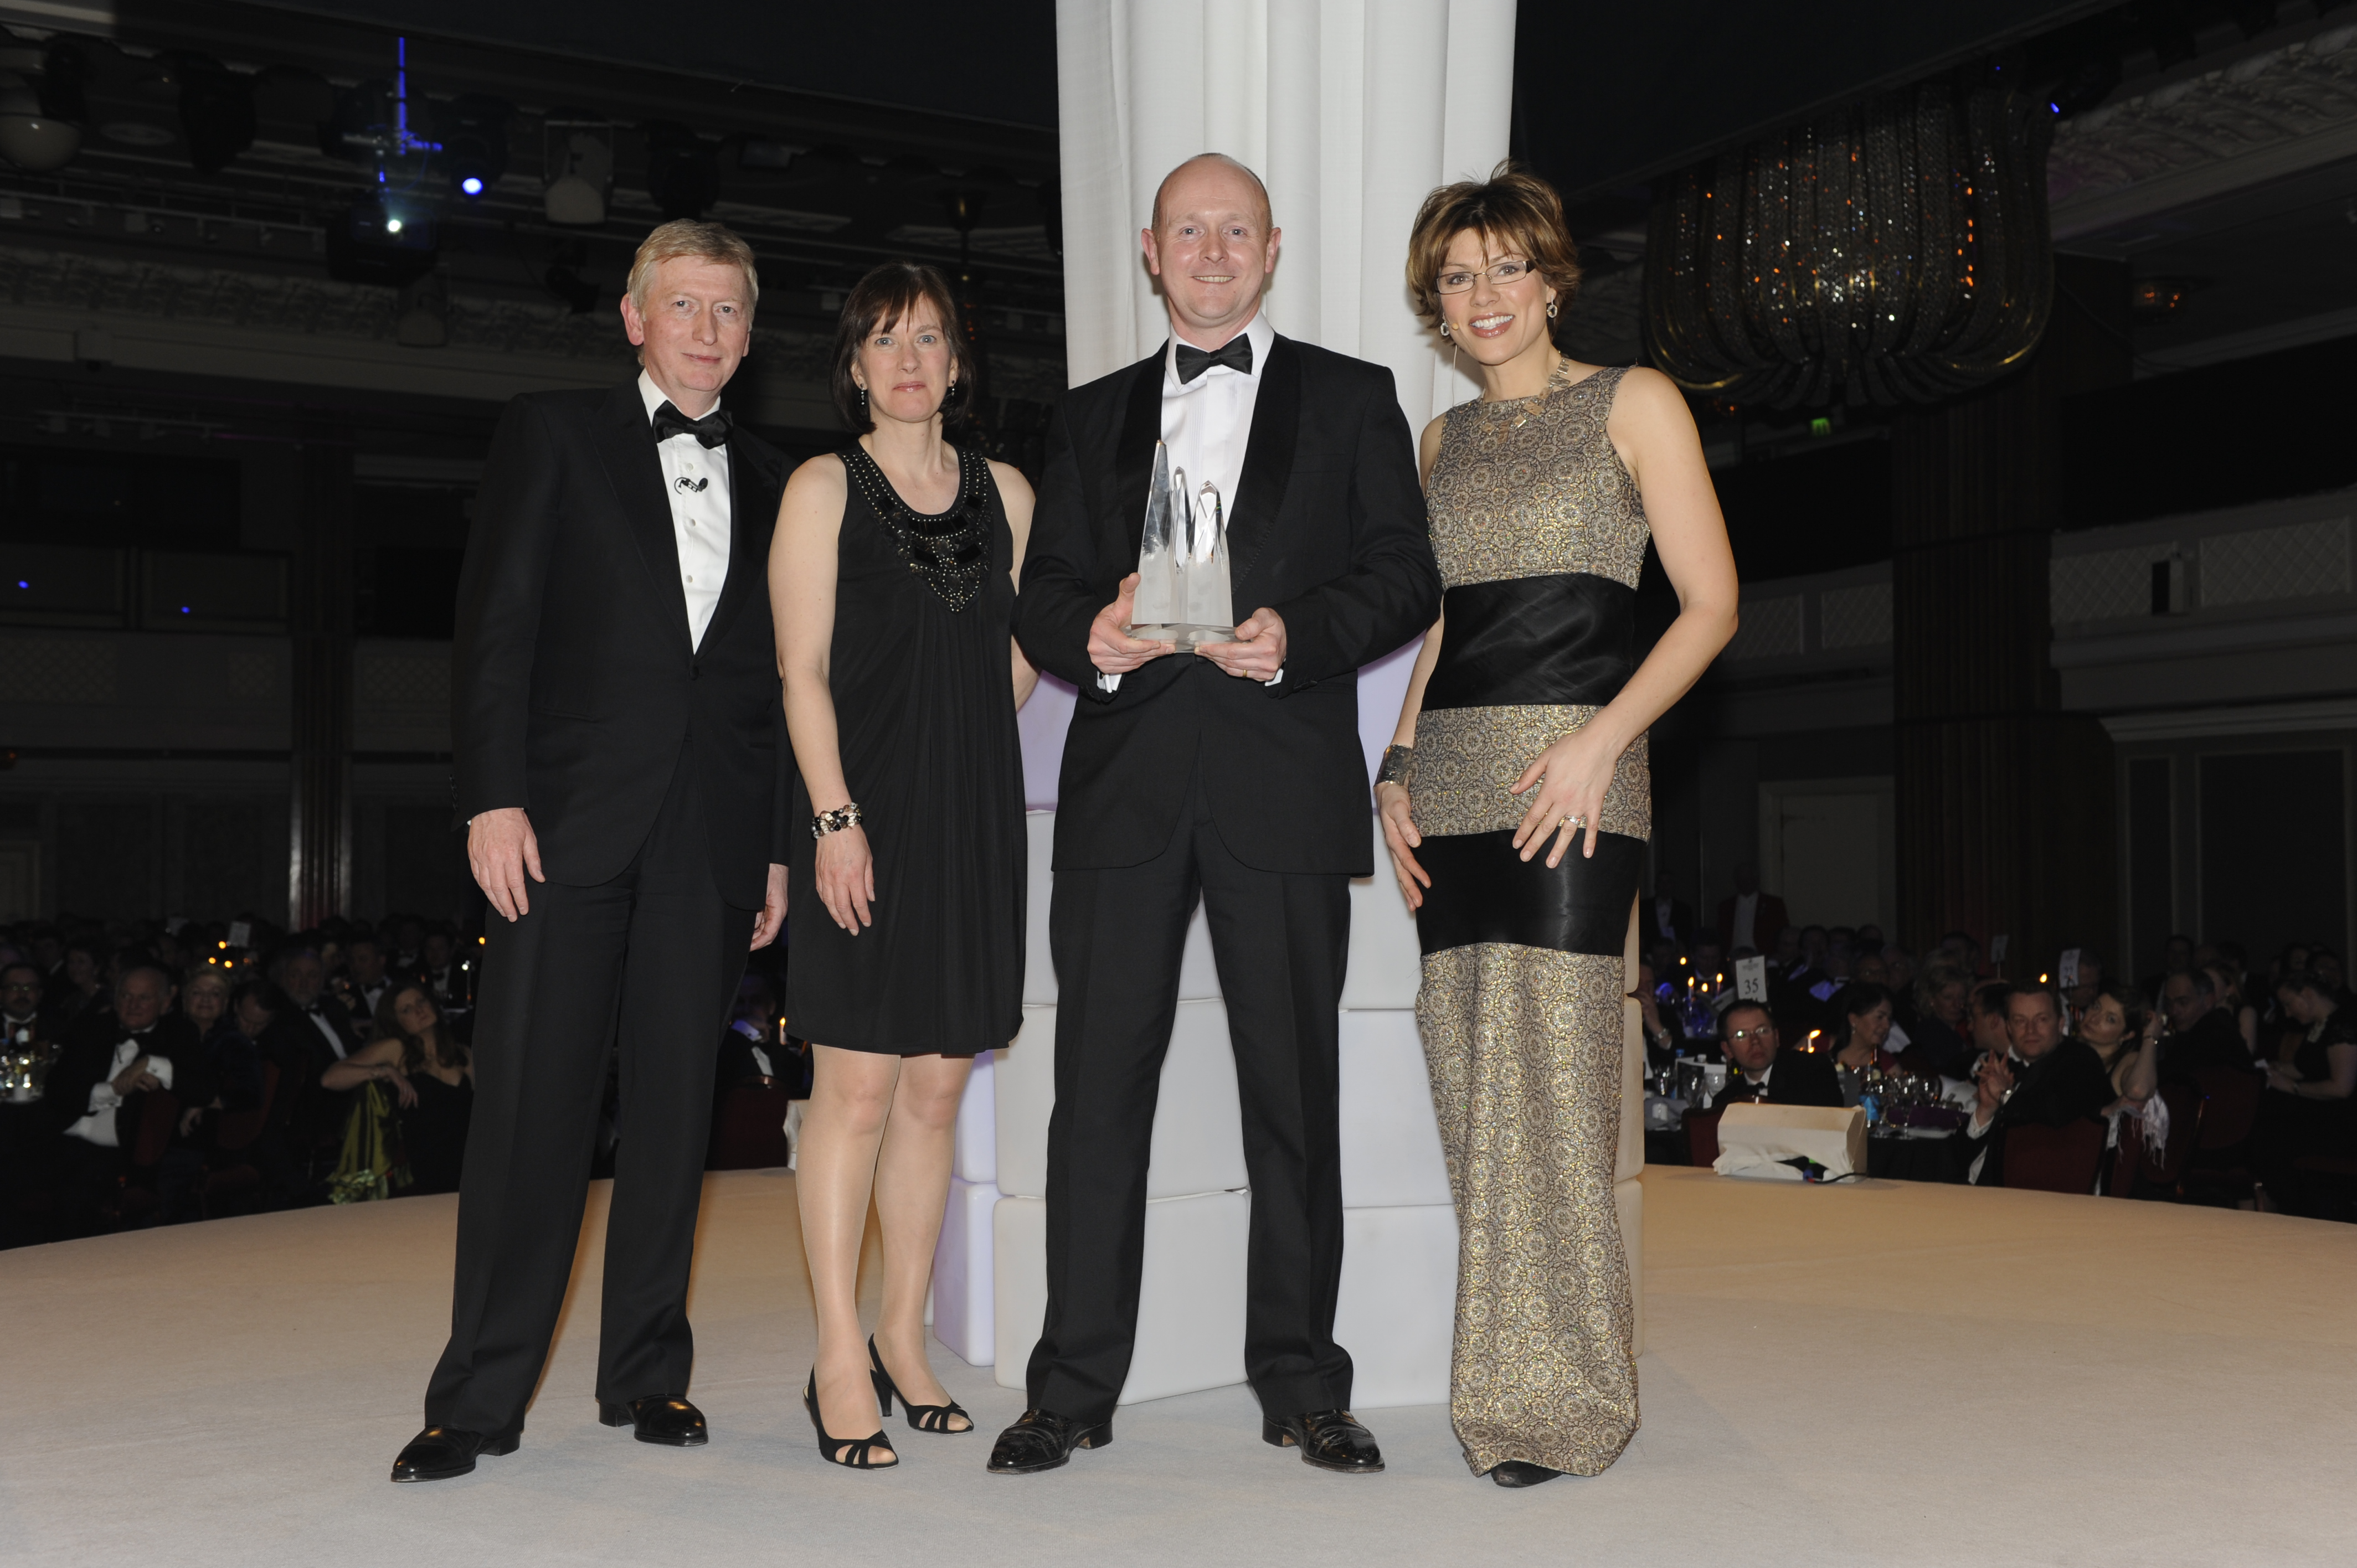 Renishaw wins the Best Technology award at this year's PLC Awards